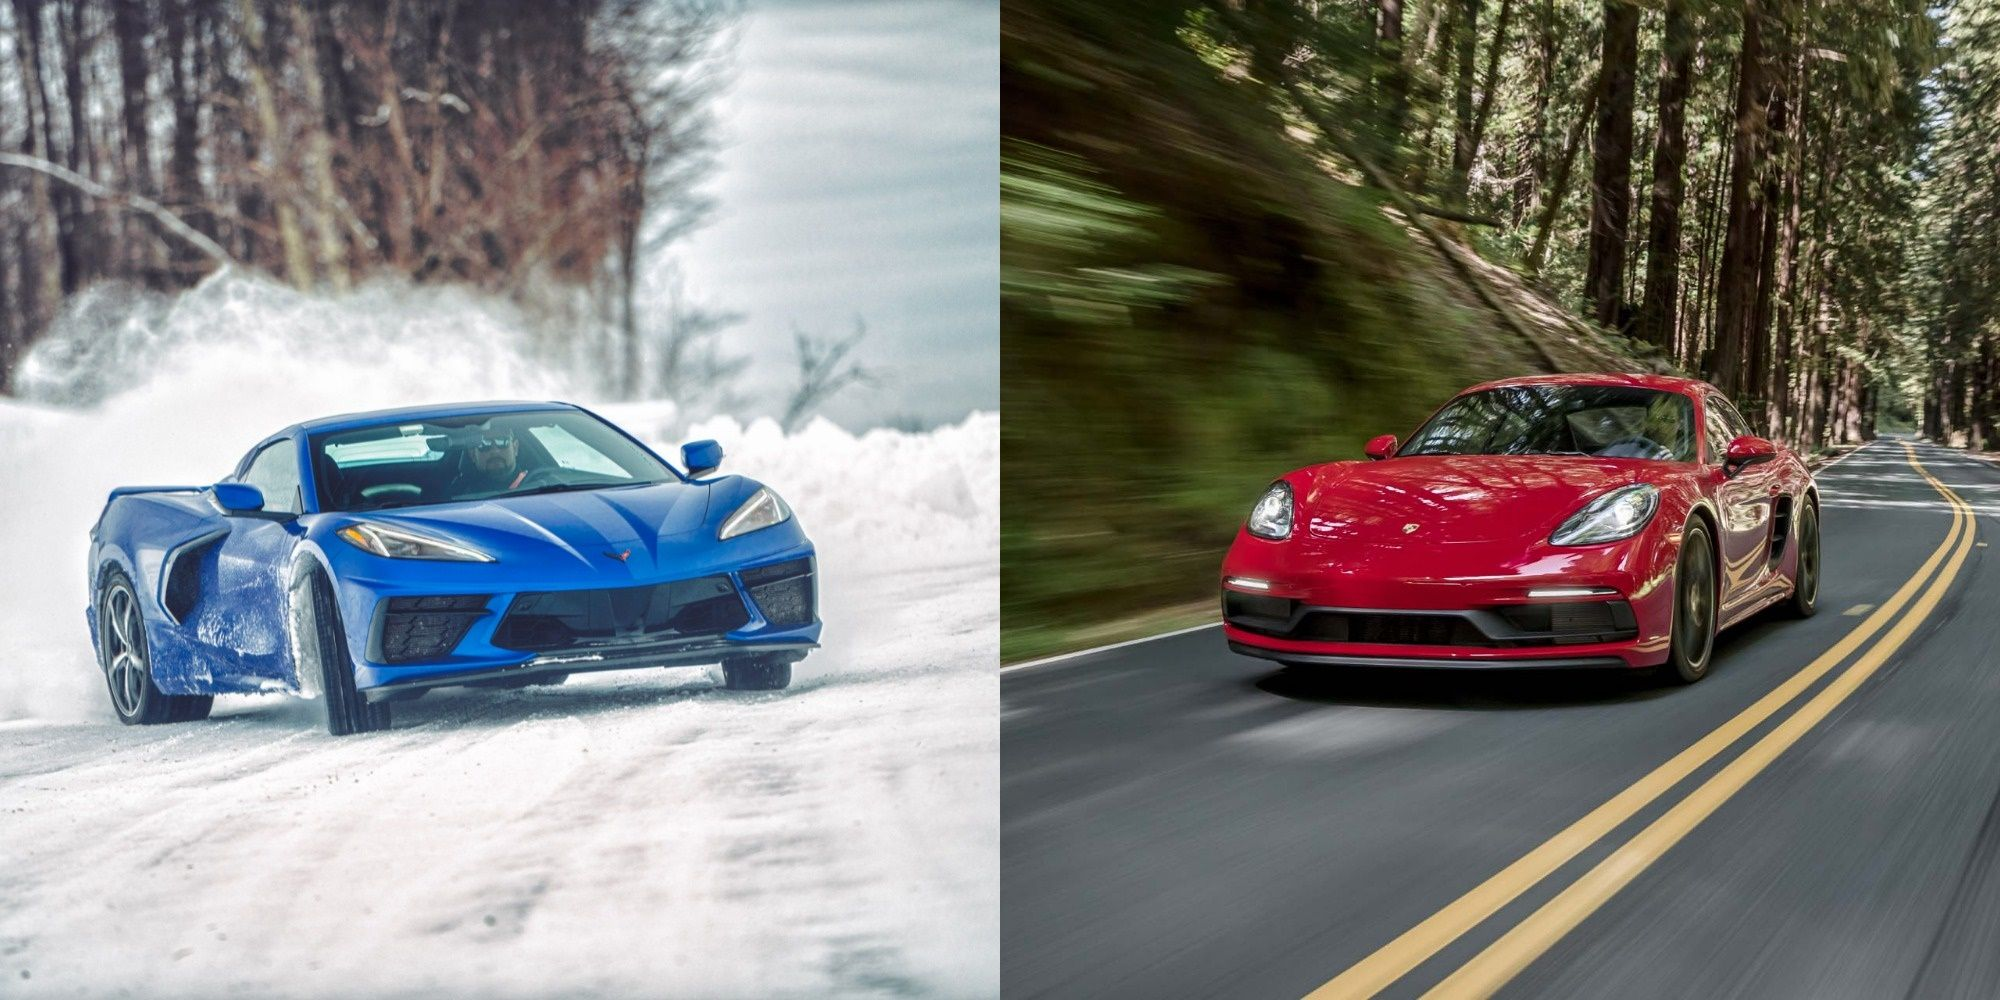 5 Reasons We'd Buy The Porsche 718 Boxster Over The New Corvette C8 (5 Why The Corvette Is Better)